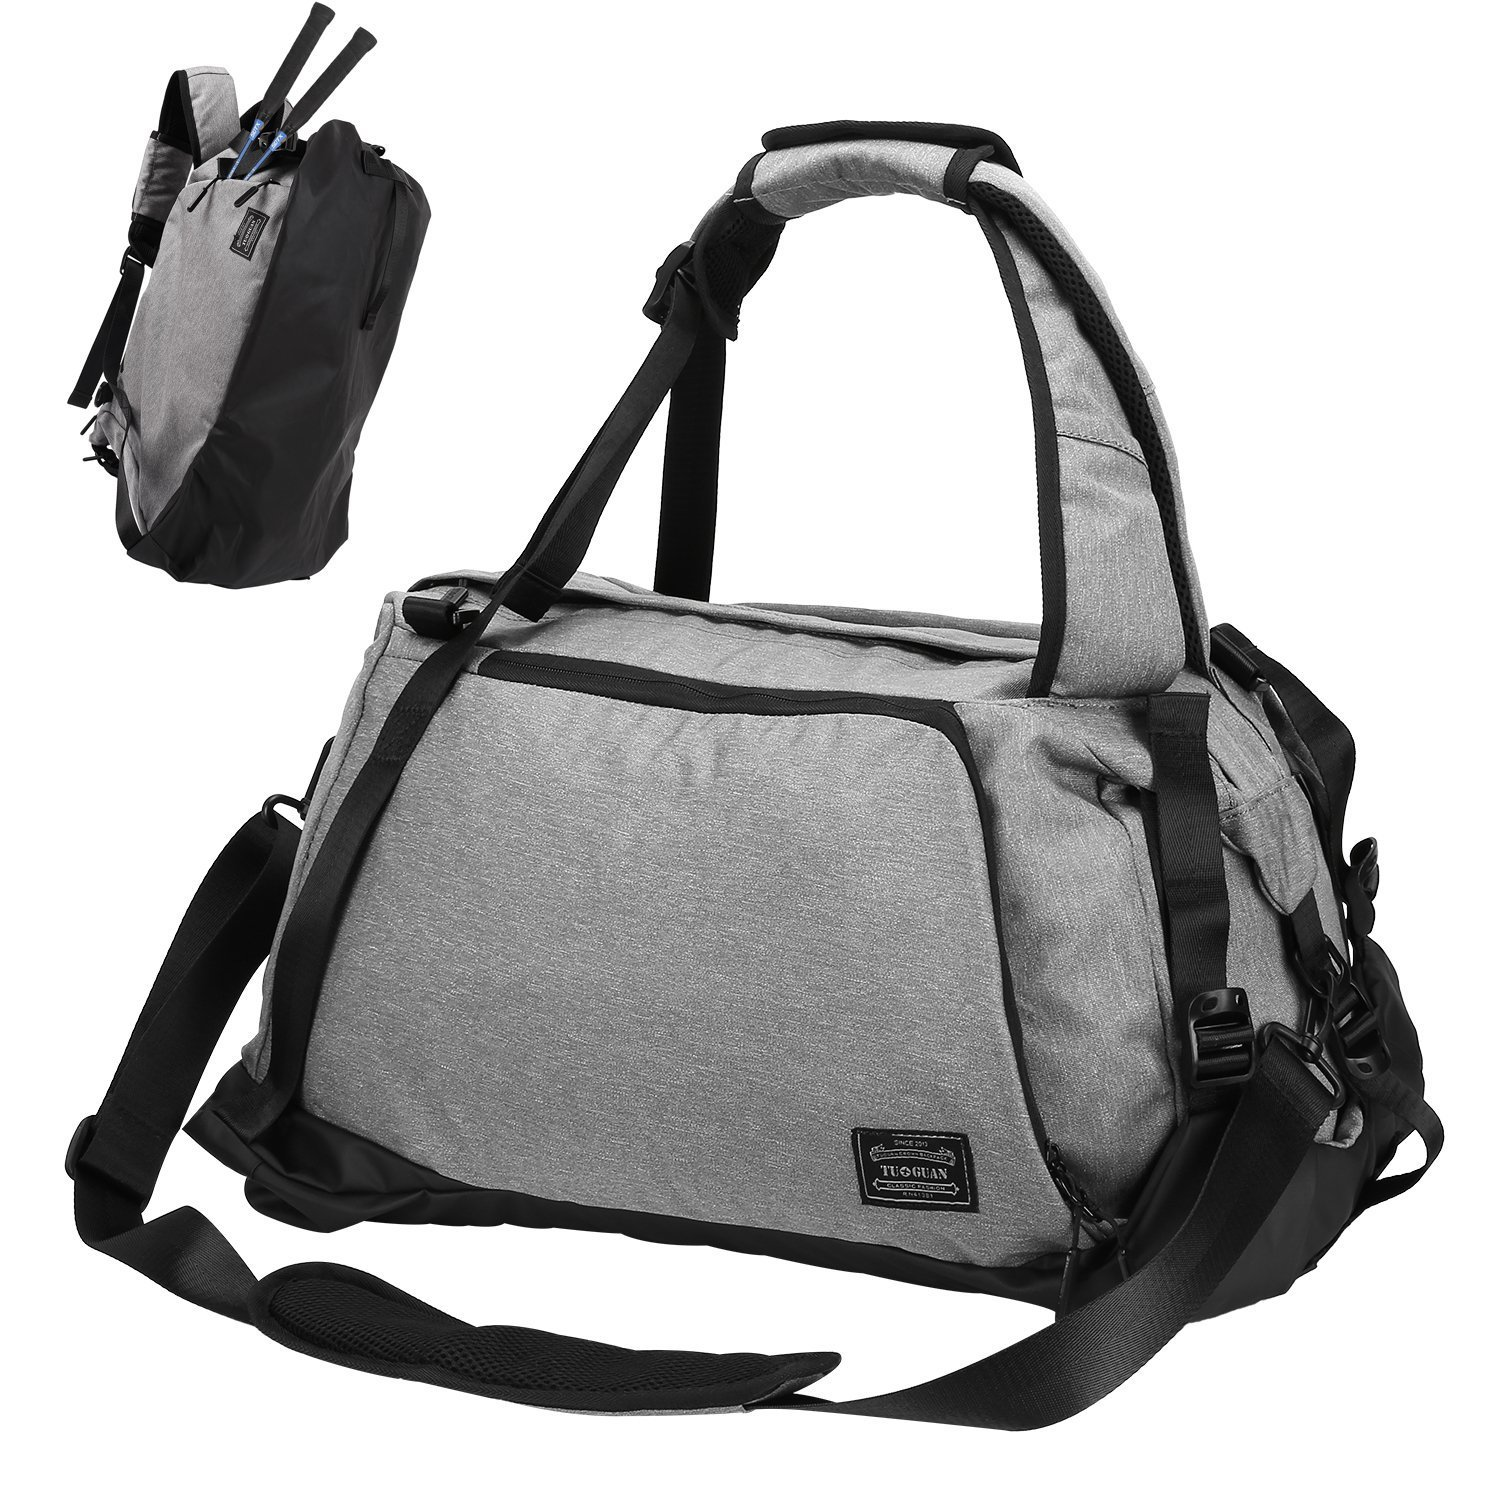 0ccb7879e40 Amazon.com   Sports Gym Bag, Lifeasy 3 in 1 Travel Duffle Bags with Shoes  Compartment Weekender Workout Backpack for Men and Women (Grey)   Sports  Duffels